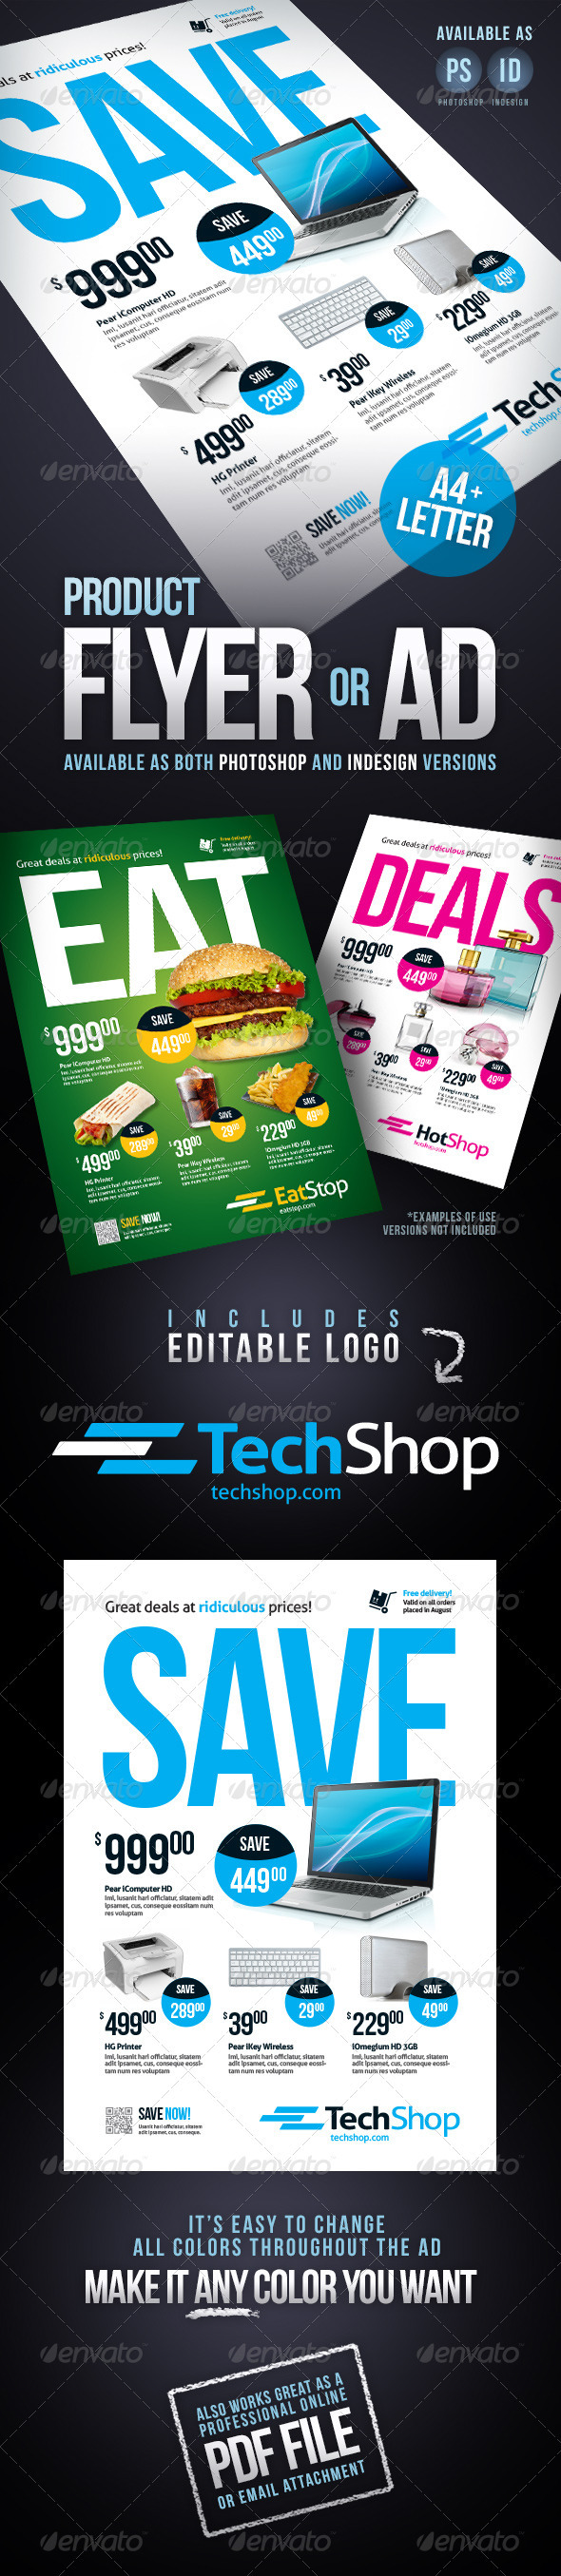 GraphicRiver Product flyer Ad 2621976